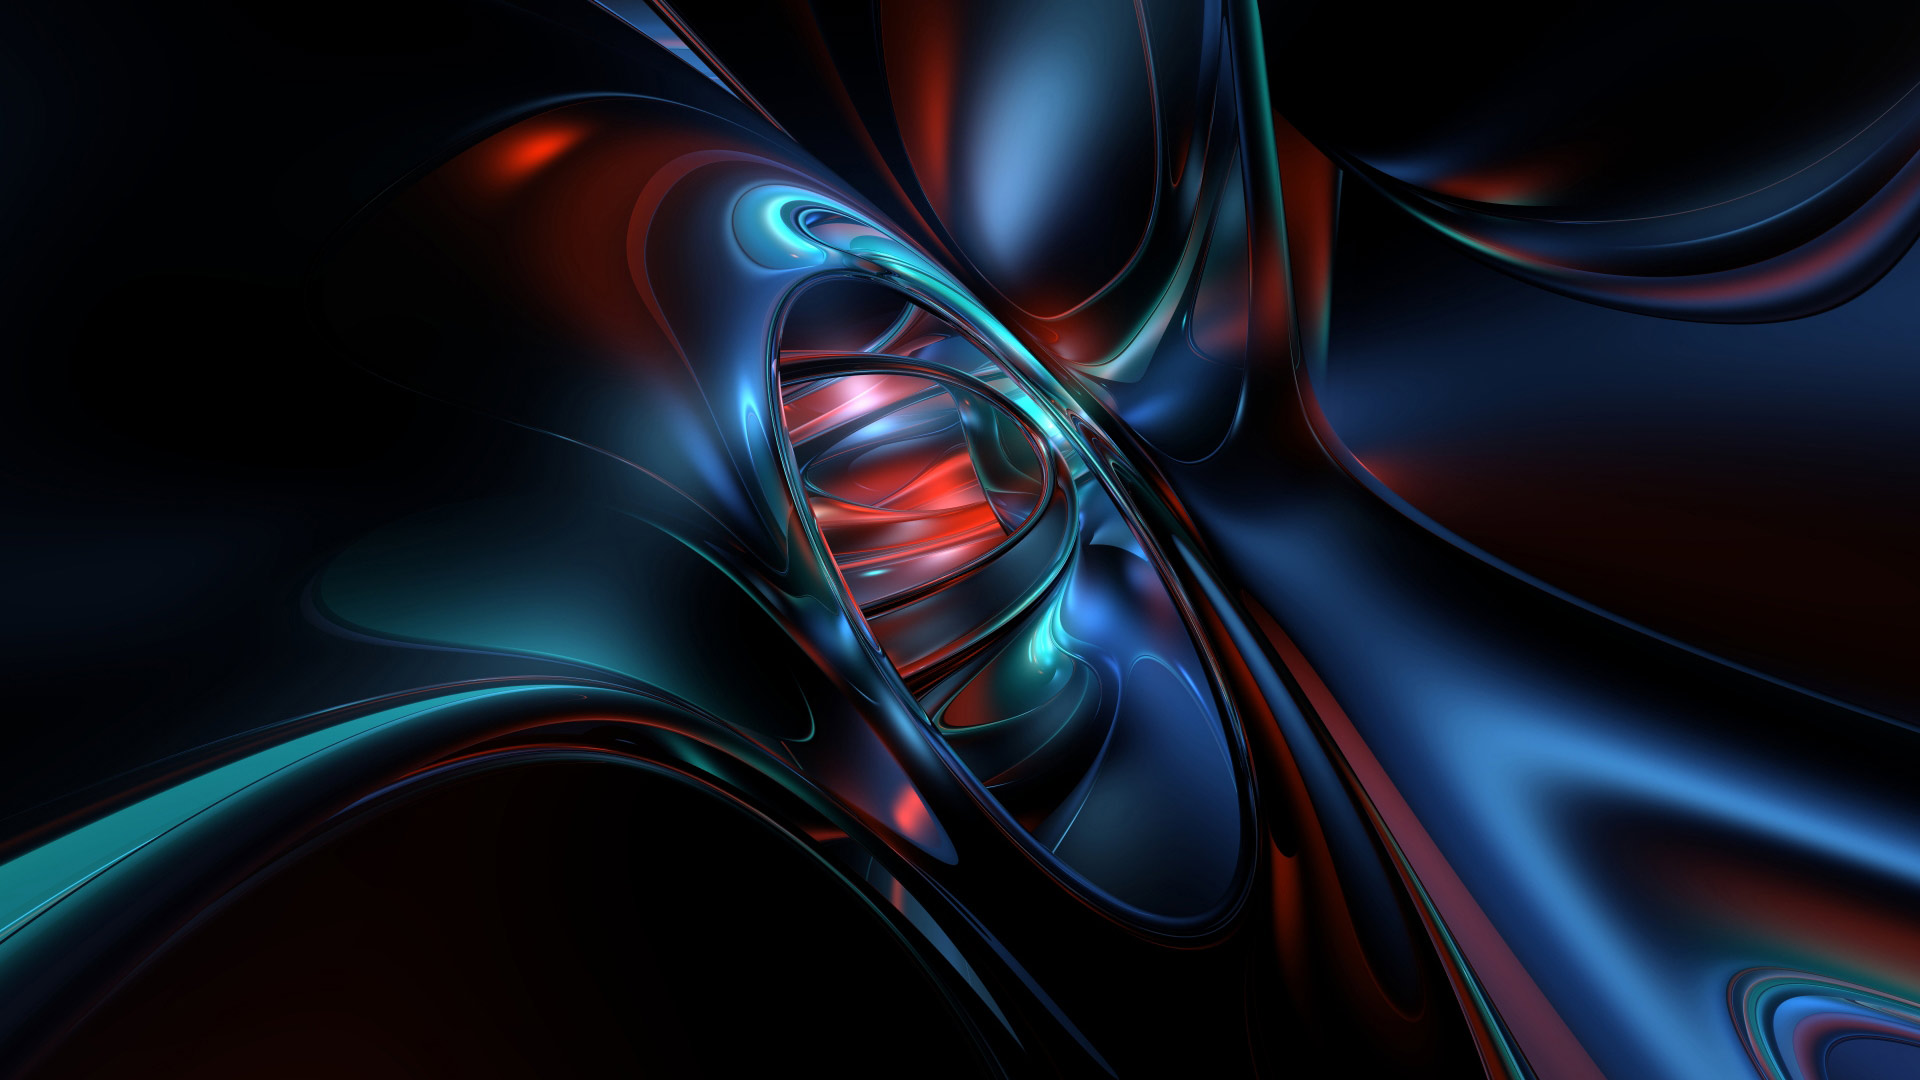 com Blue Red Teal and Black Abstract Wallpaper 1920x1080